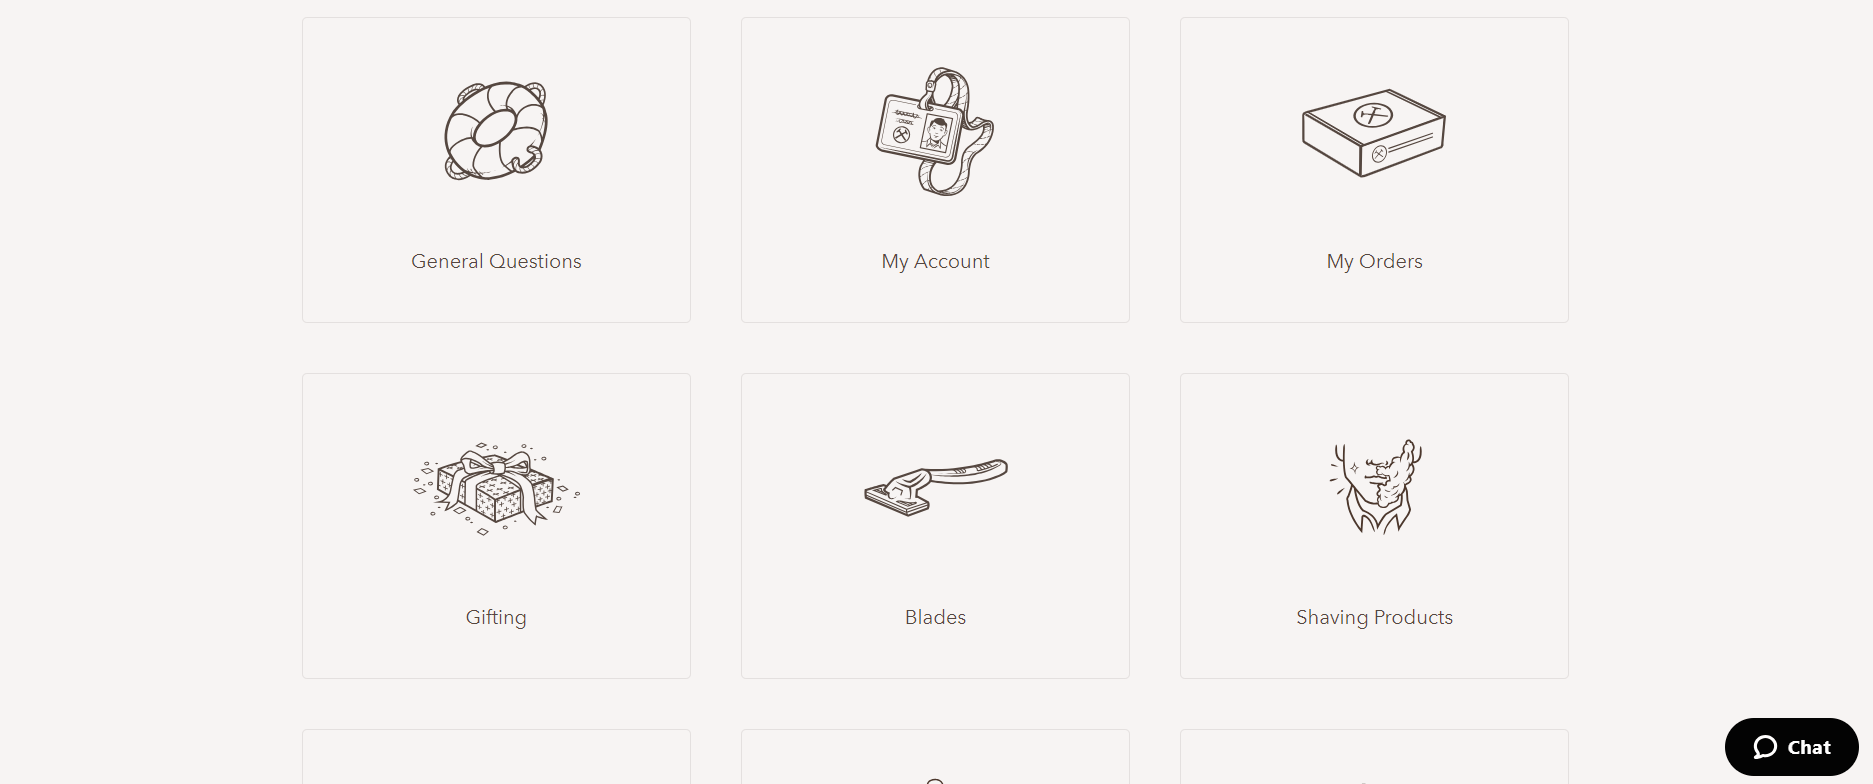 Example of hand-drawn icons on the website